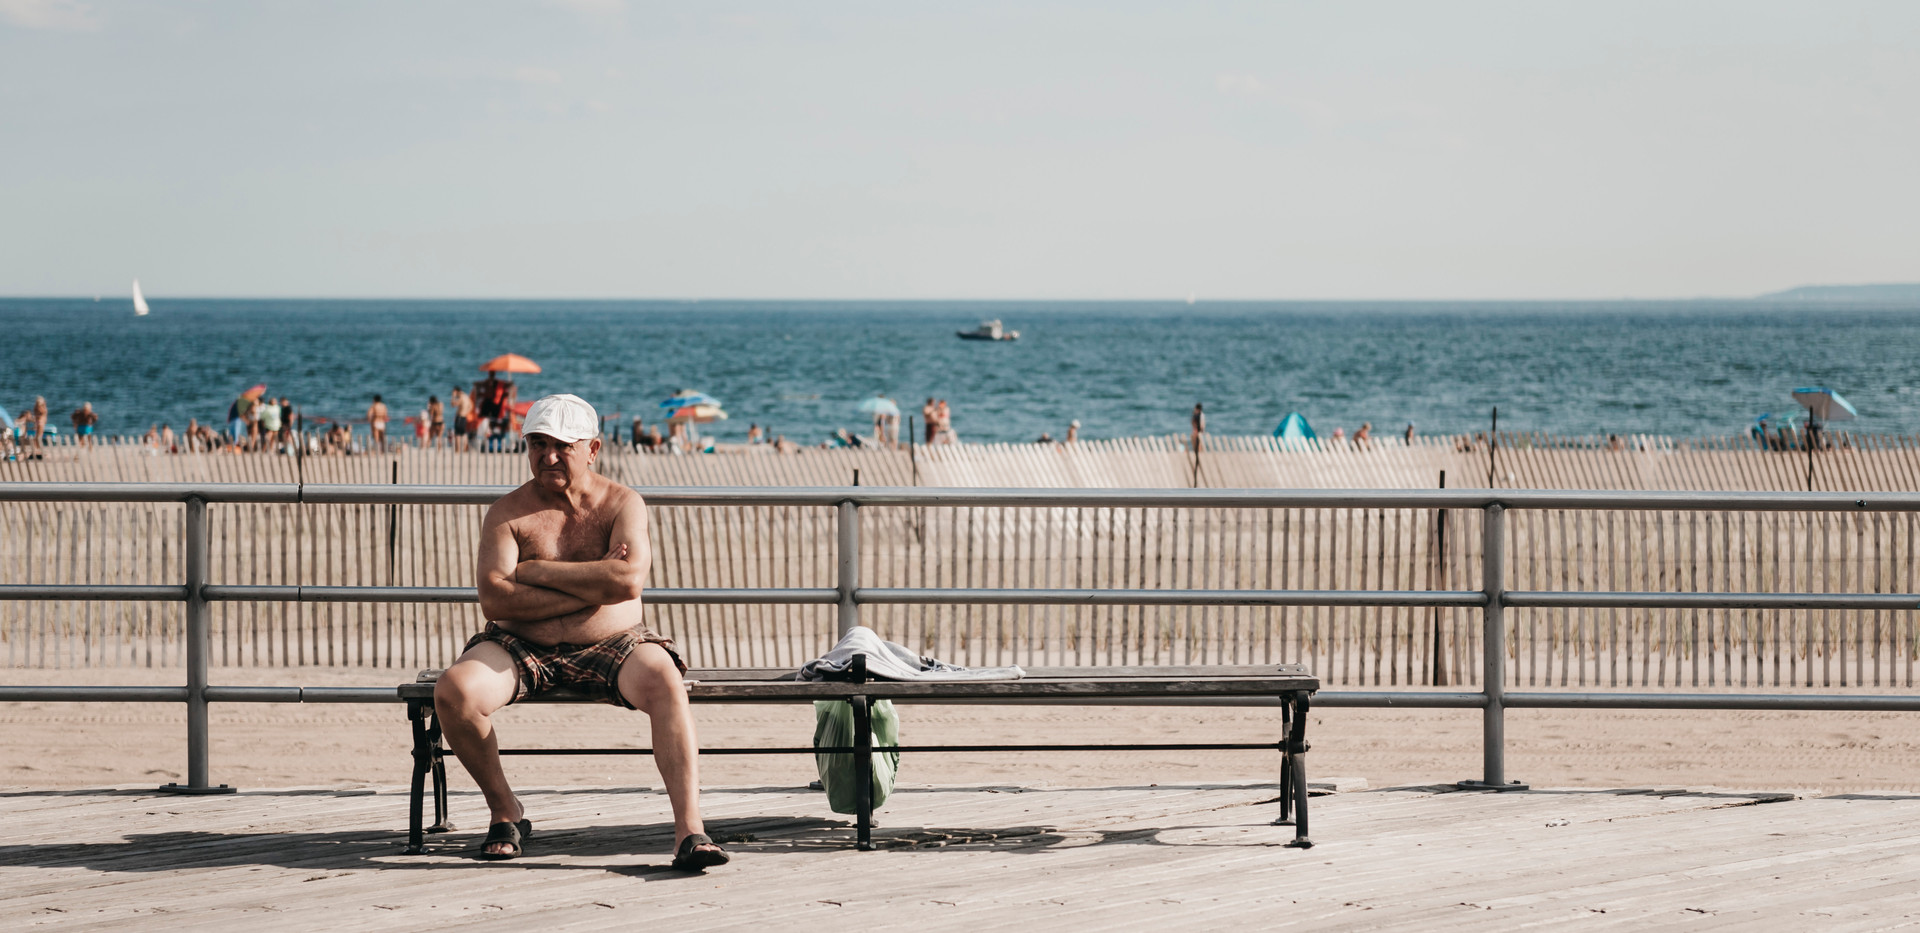 Coney Island, New York, August 2019.